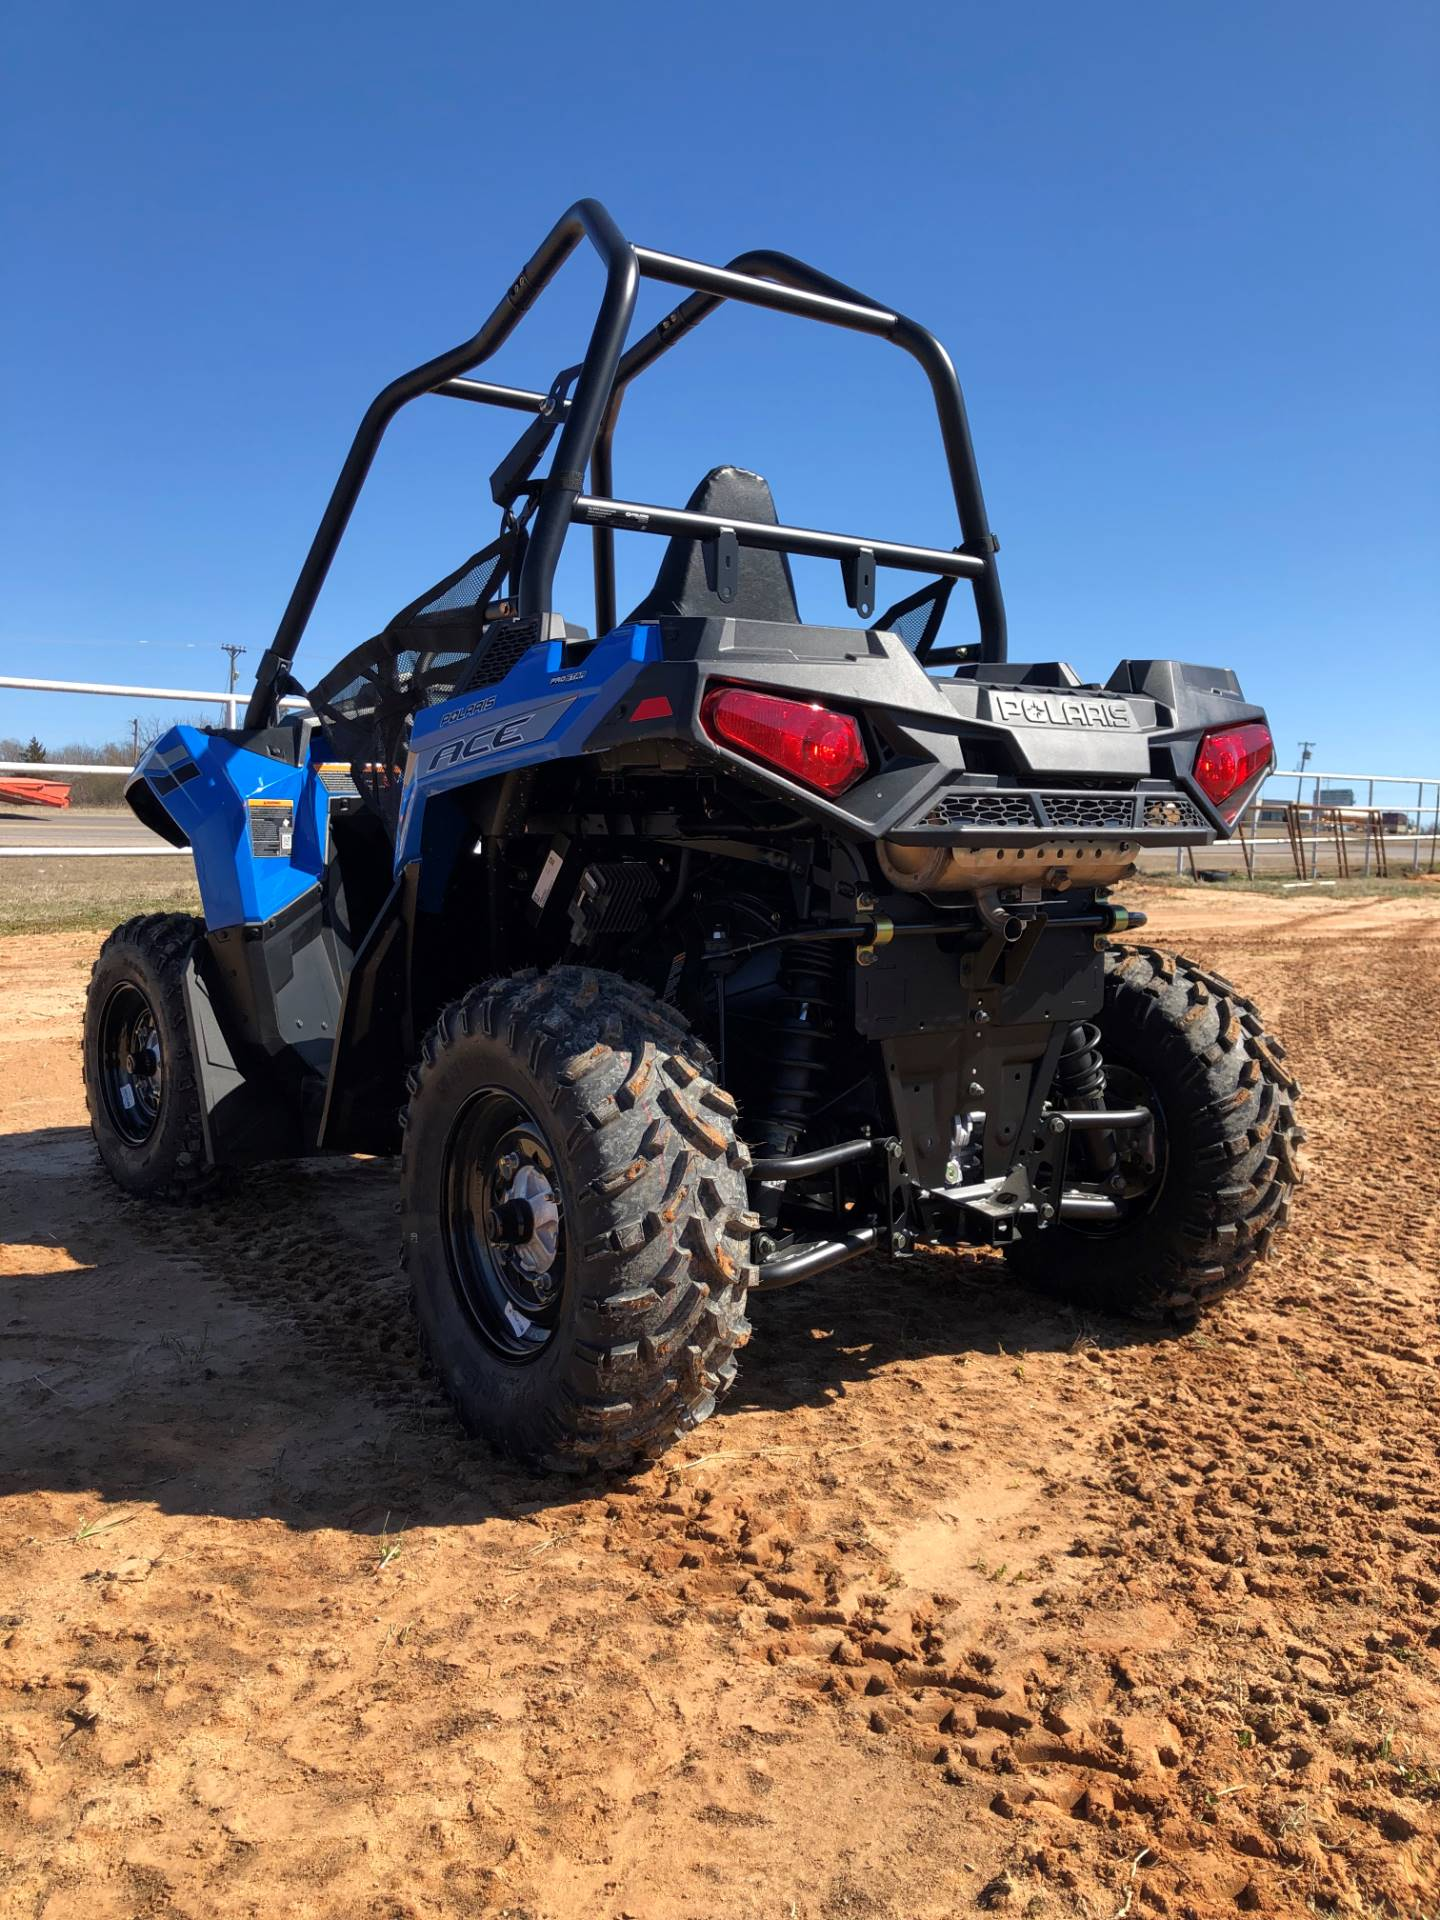 2019 Polaris Ace 500 in Ada, Oklahoma - Photo 4